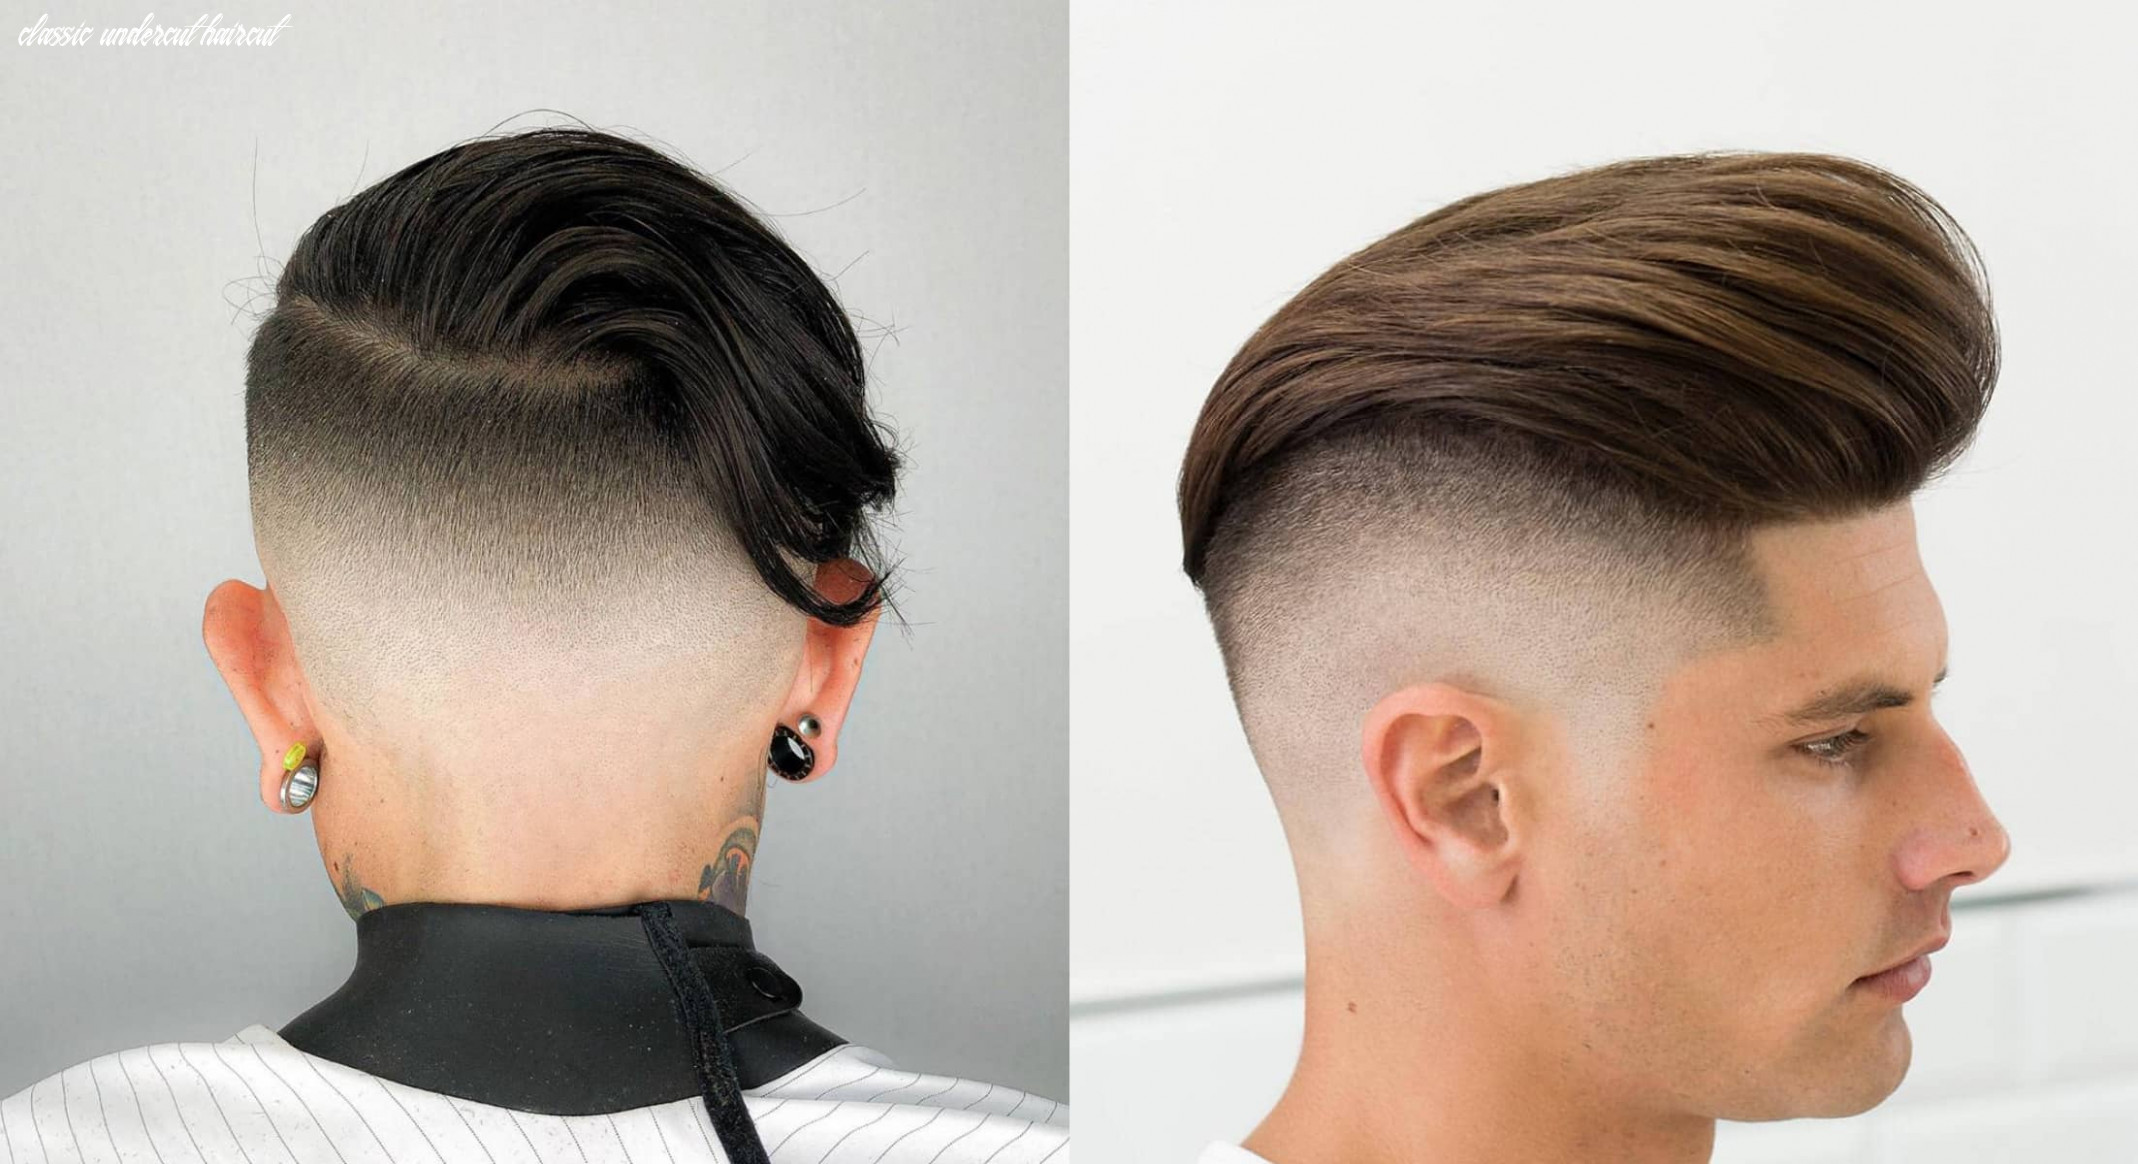 8 classic undercut hairstyles for men | stylesrant classic undercut haircut